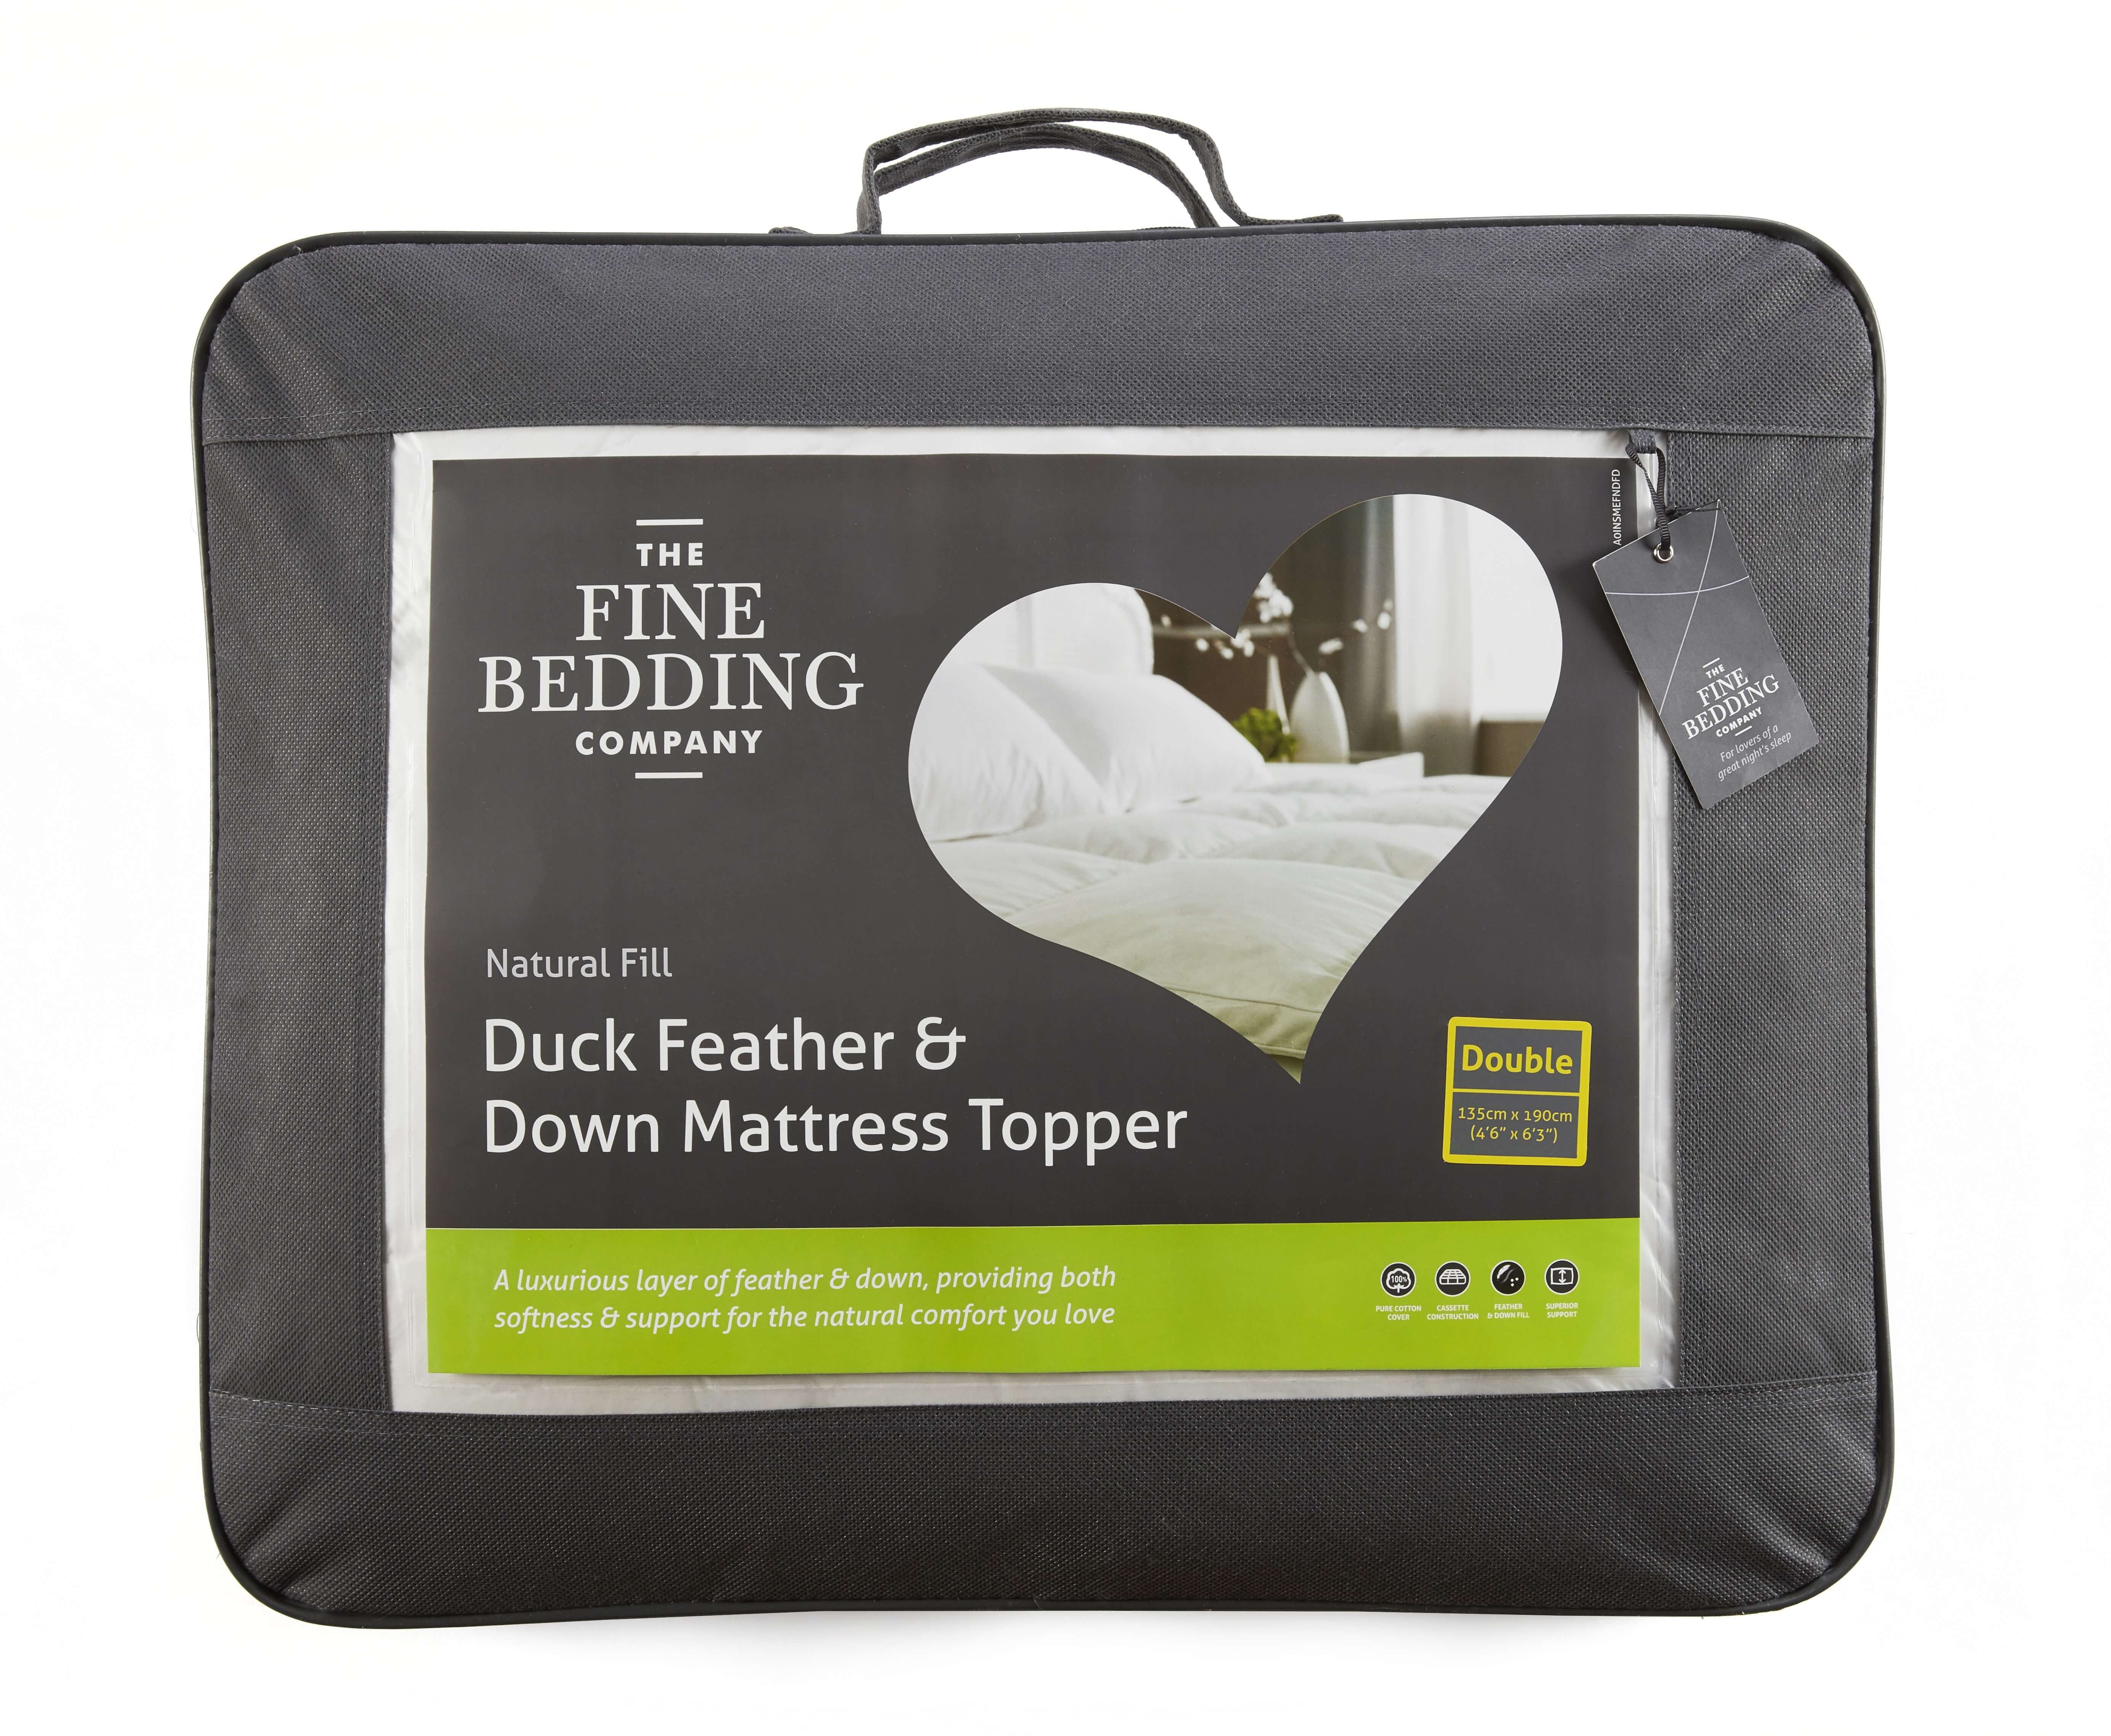 Duck Feather & Down Mattress Topper - The Fine Bedding Company